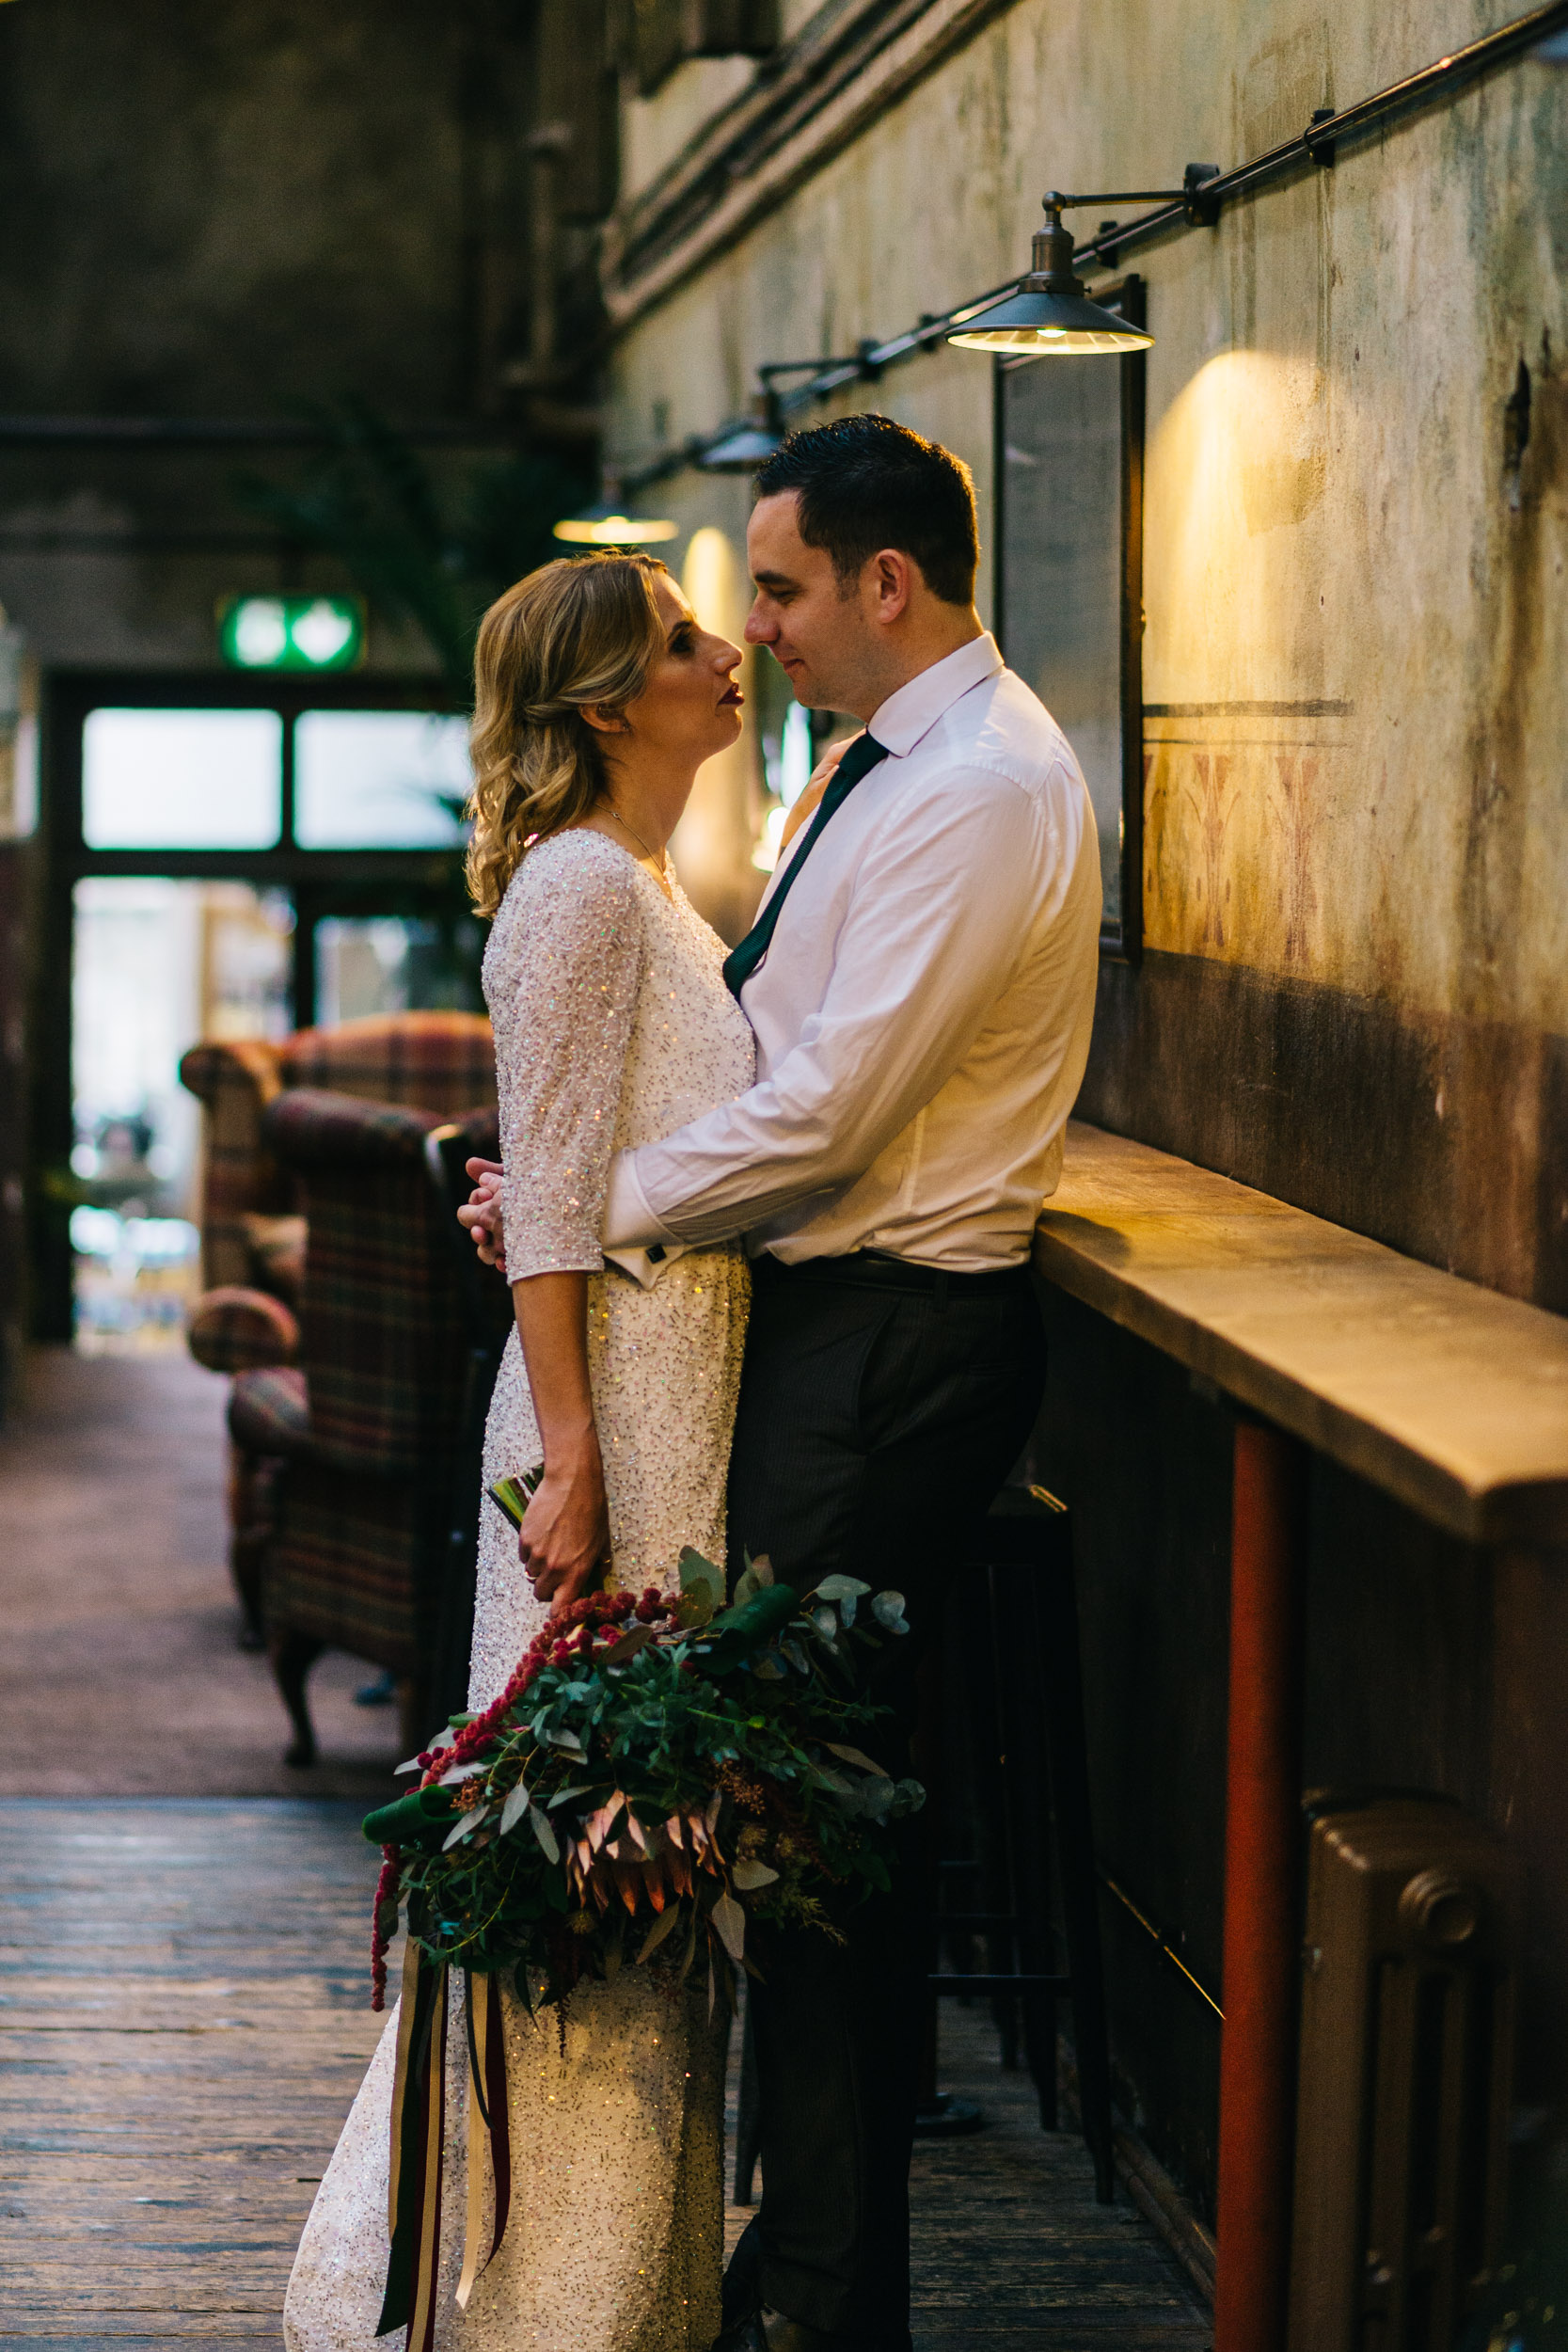 Holmes Mill, Clitheroe, Lancashire - Styled Wedding Shoot-15.jpg